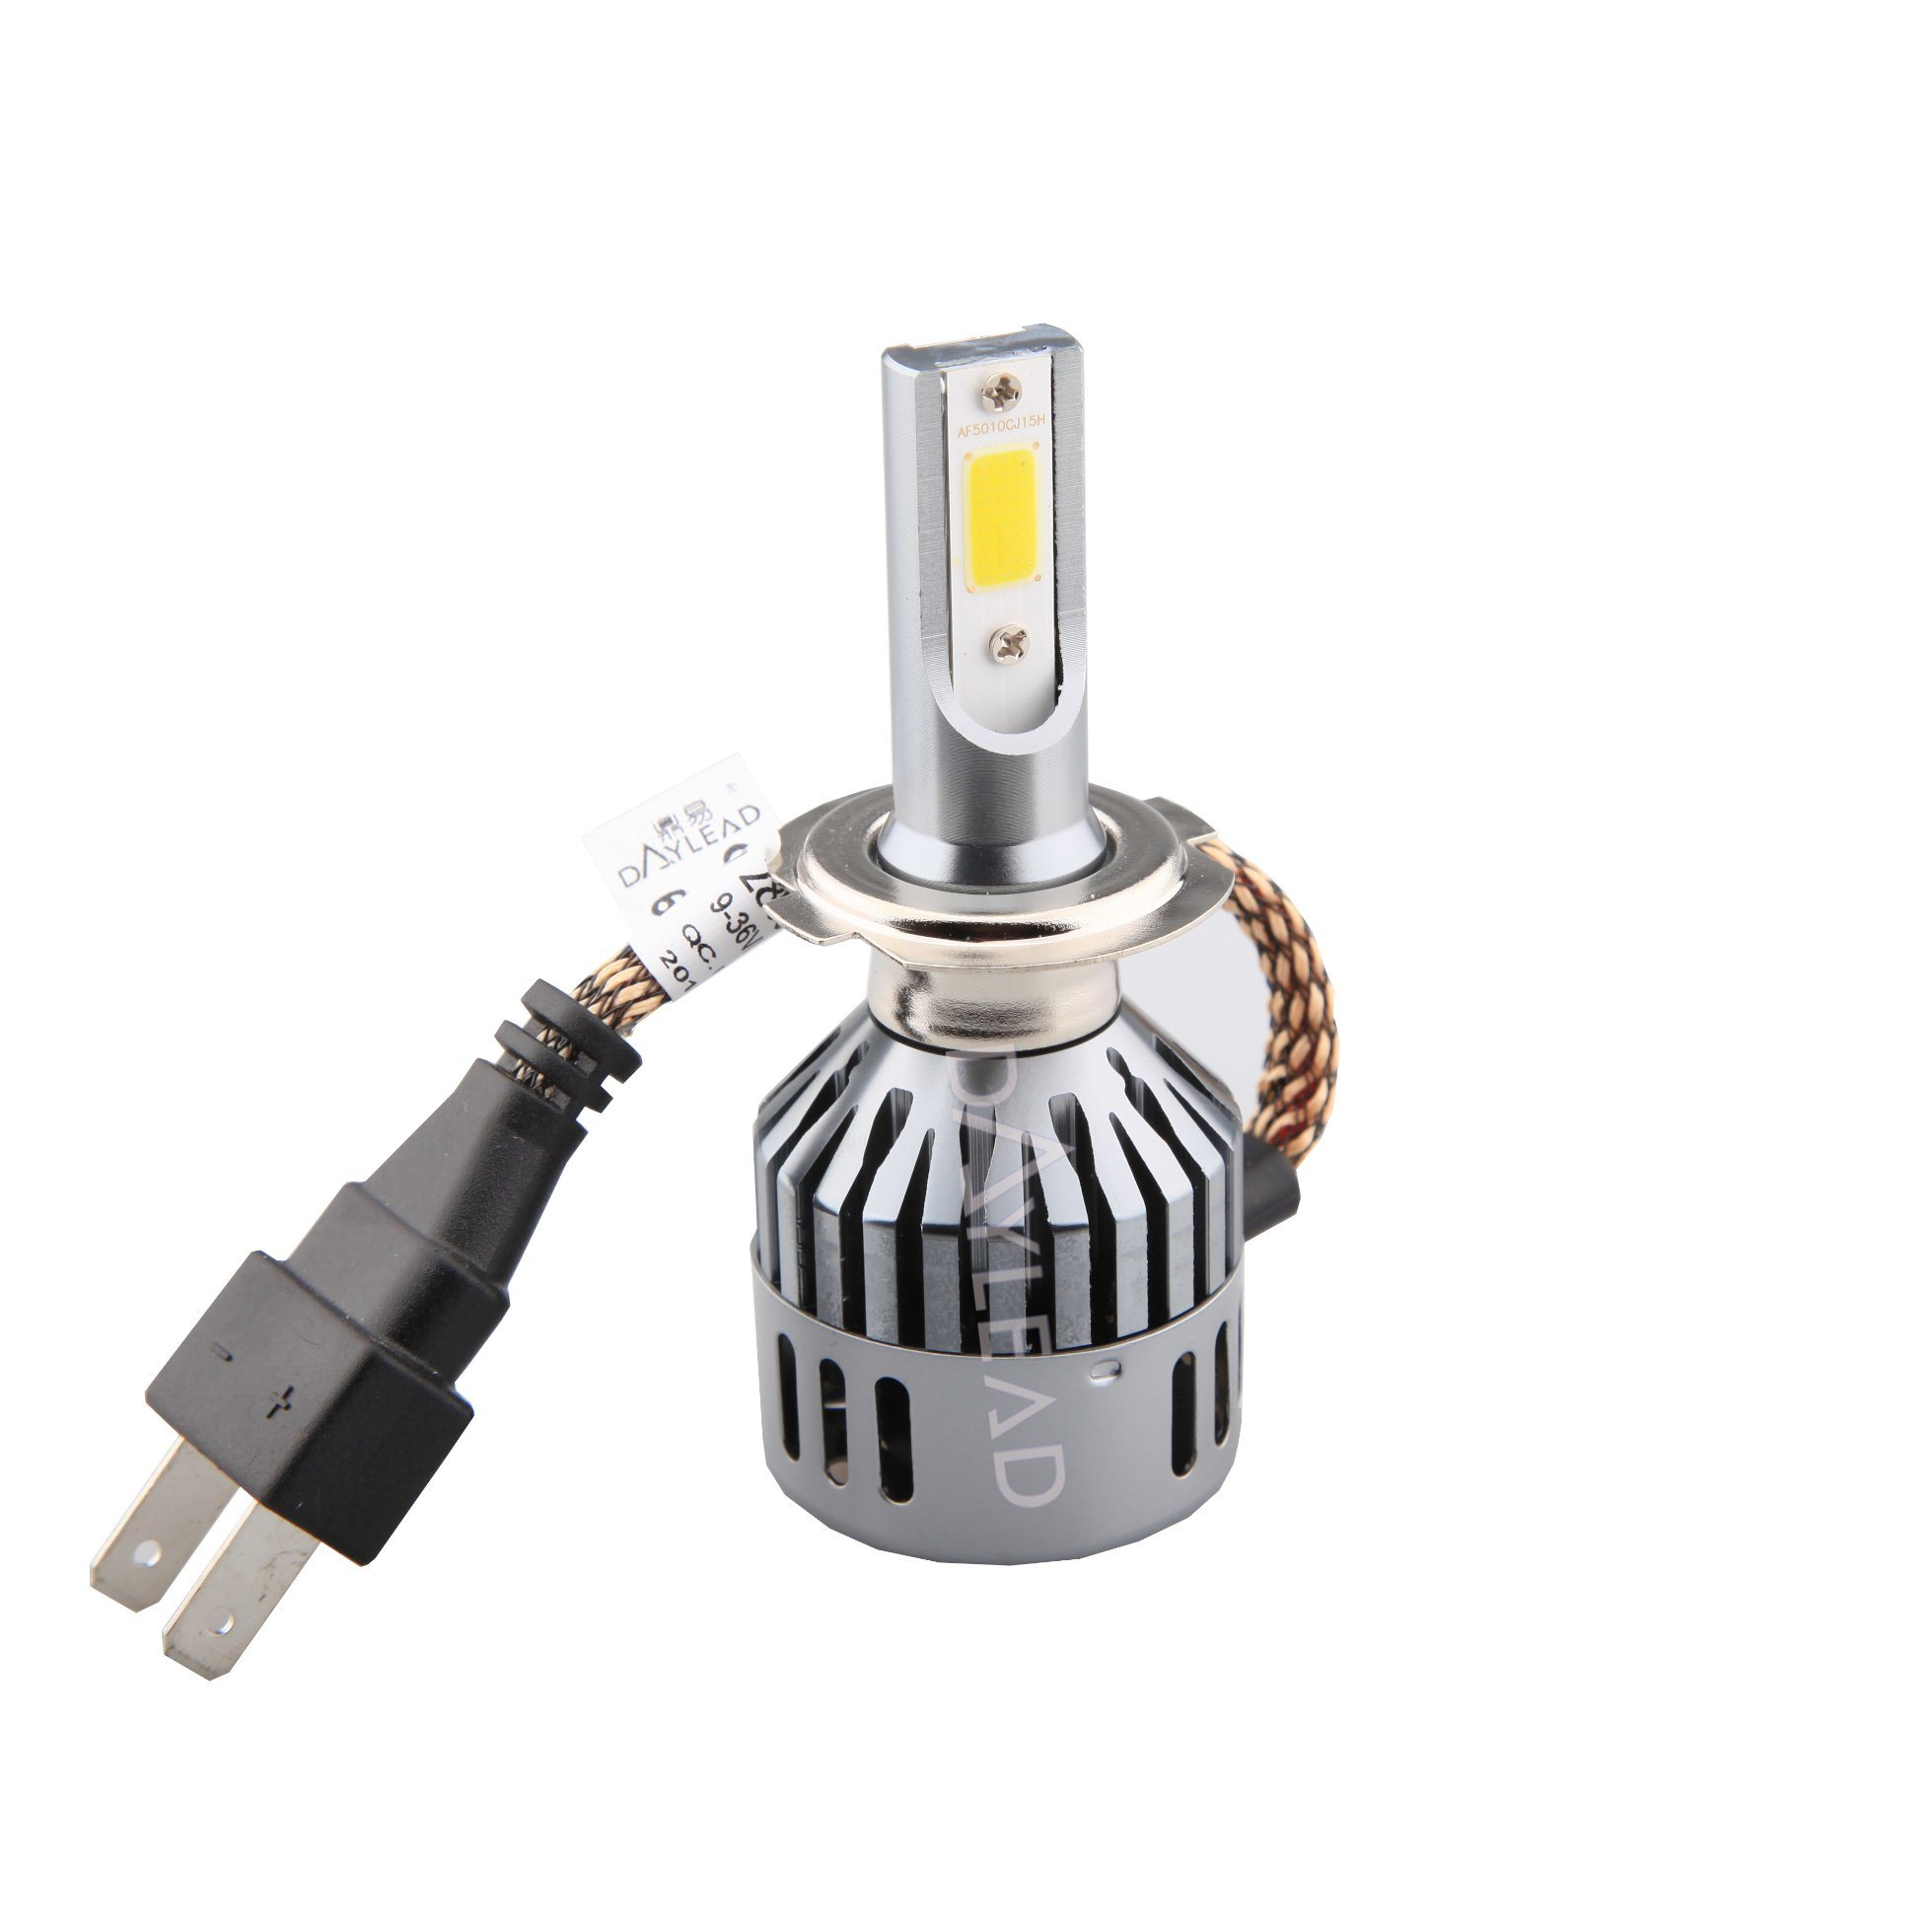 Hottest Auto LED Headlight H7 with Best Price, High Brightness Bulb